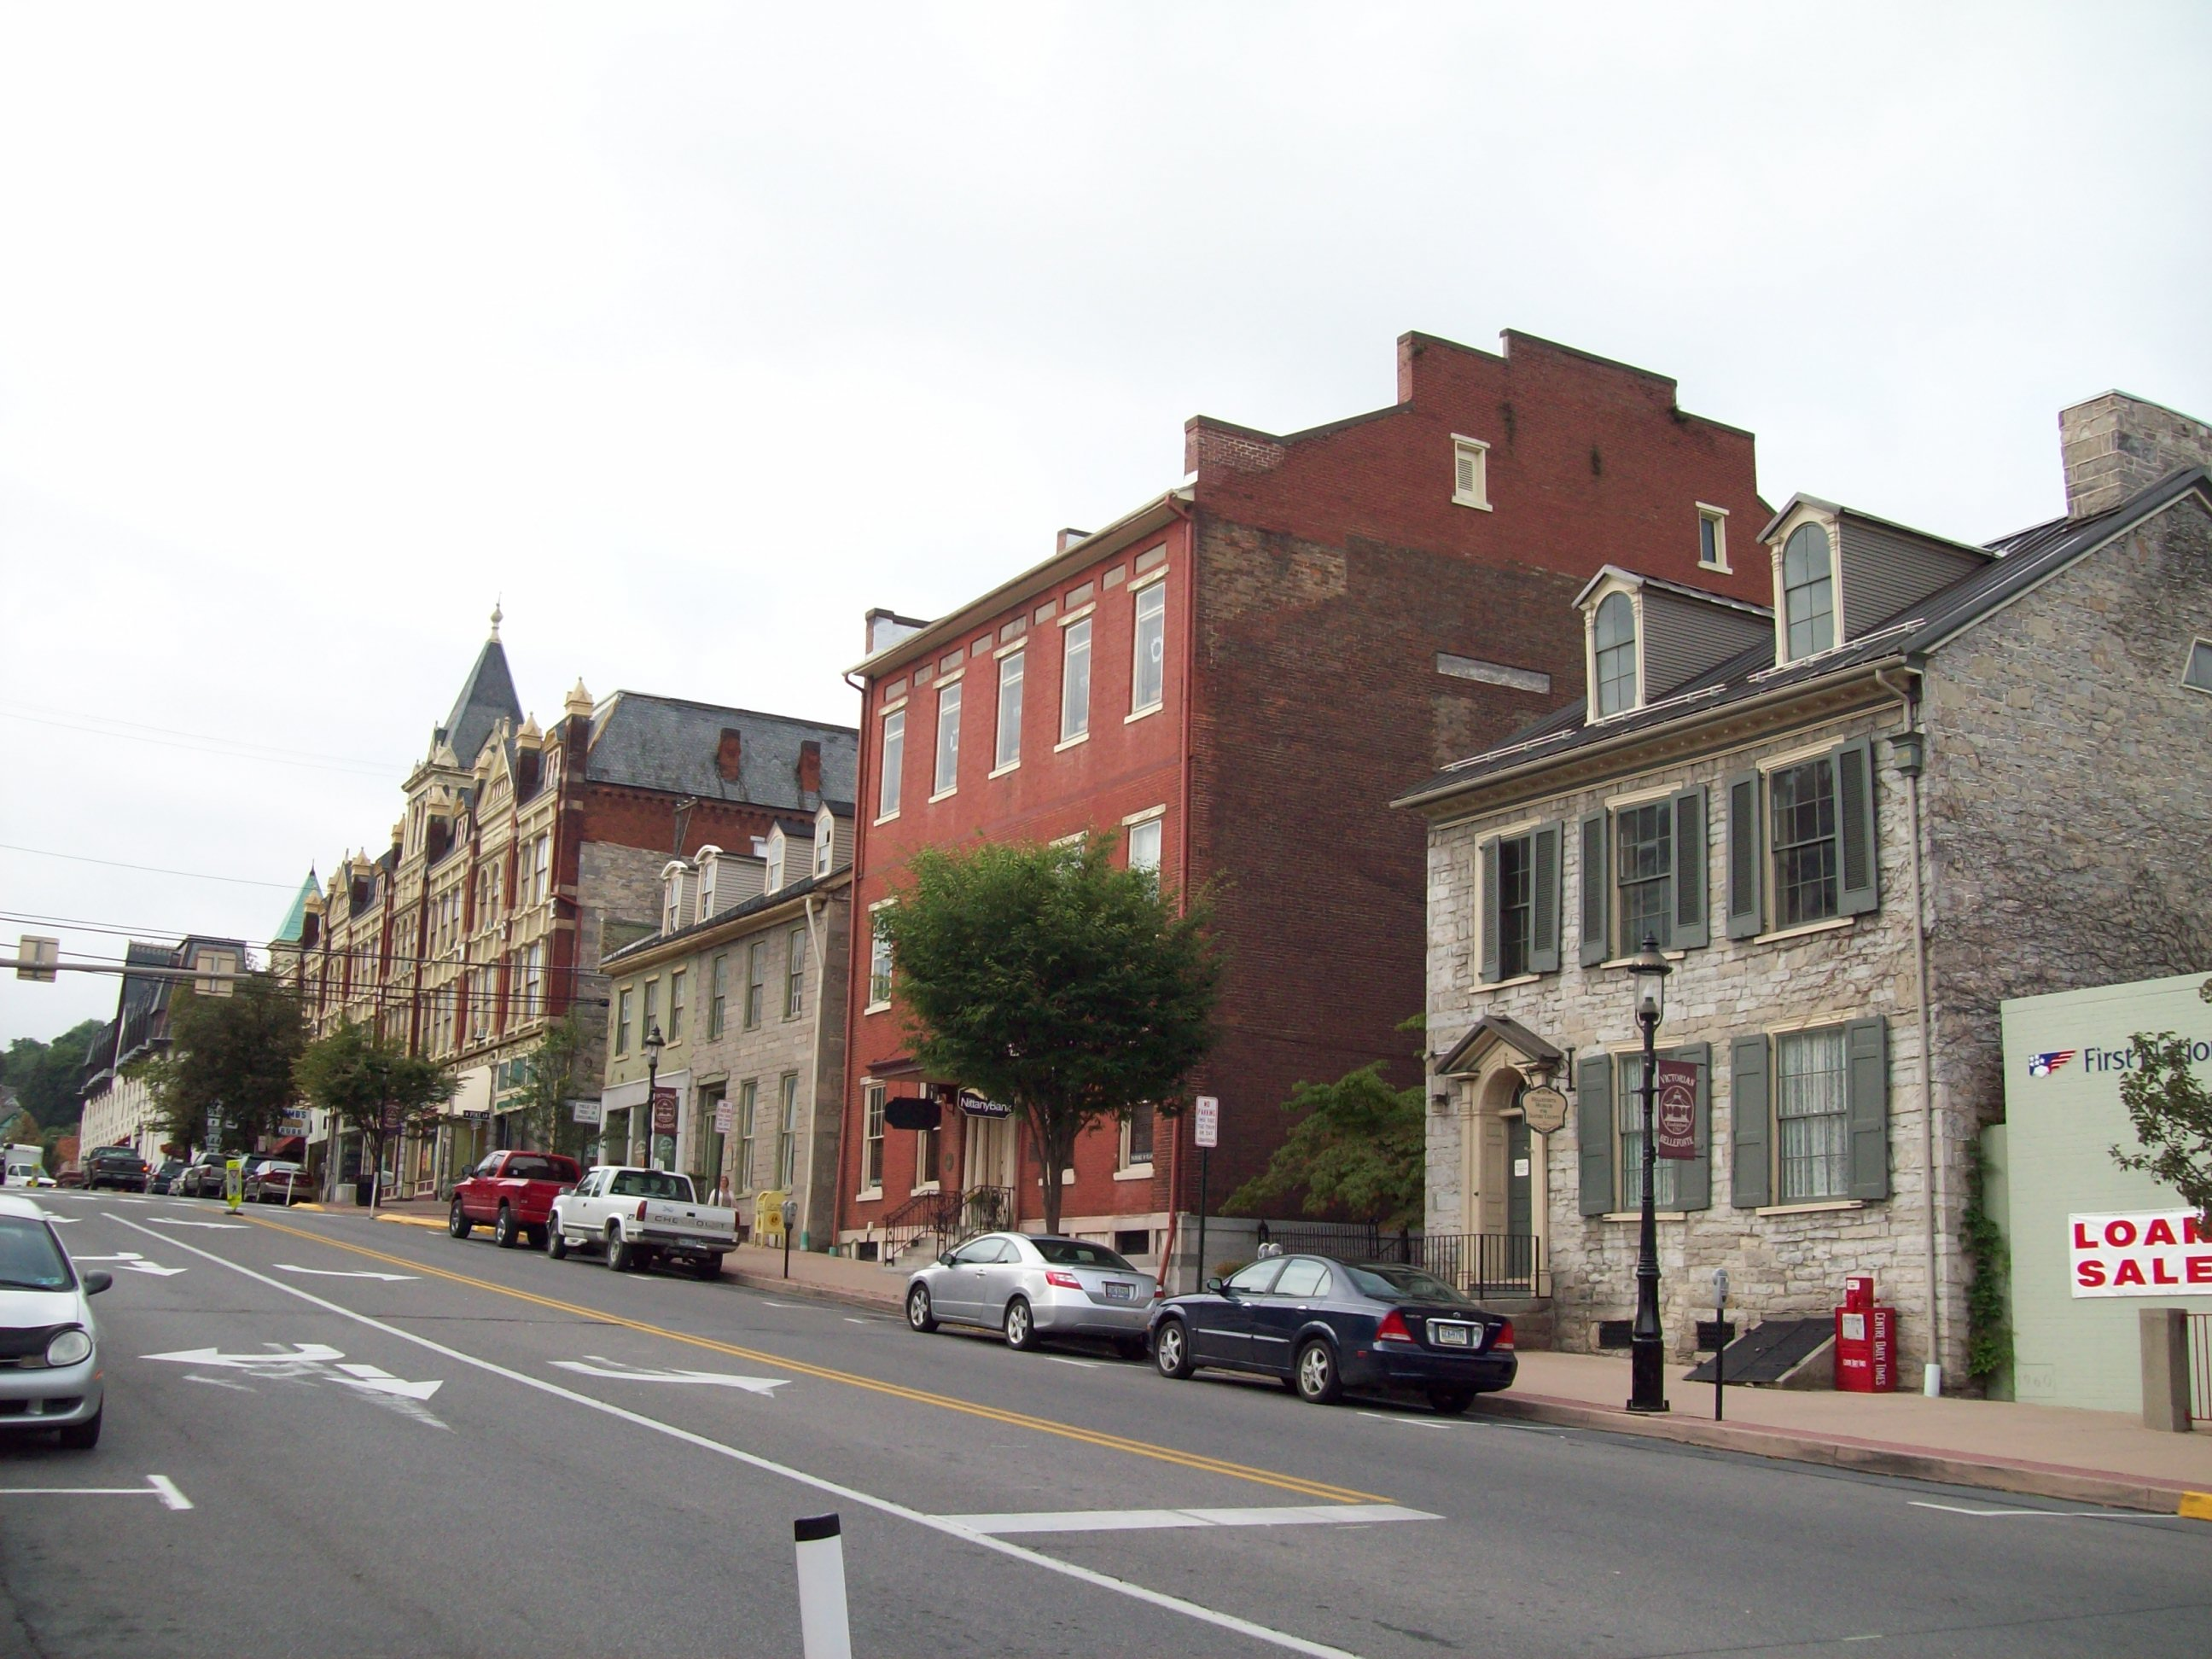 Bellefonte (PA) United States  city photo : Bellefonte Historic District Aug 10 Wikipedia, the free ...